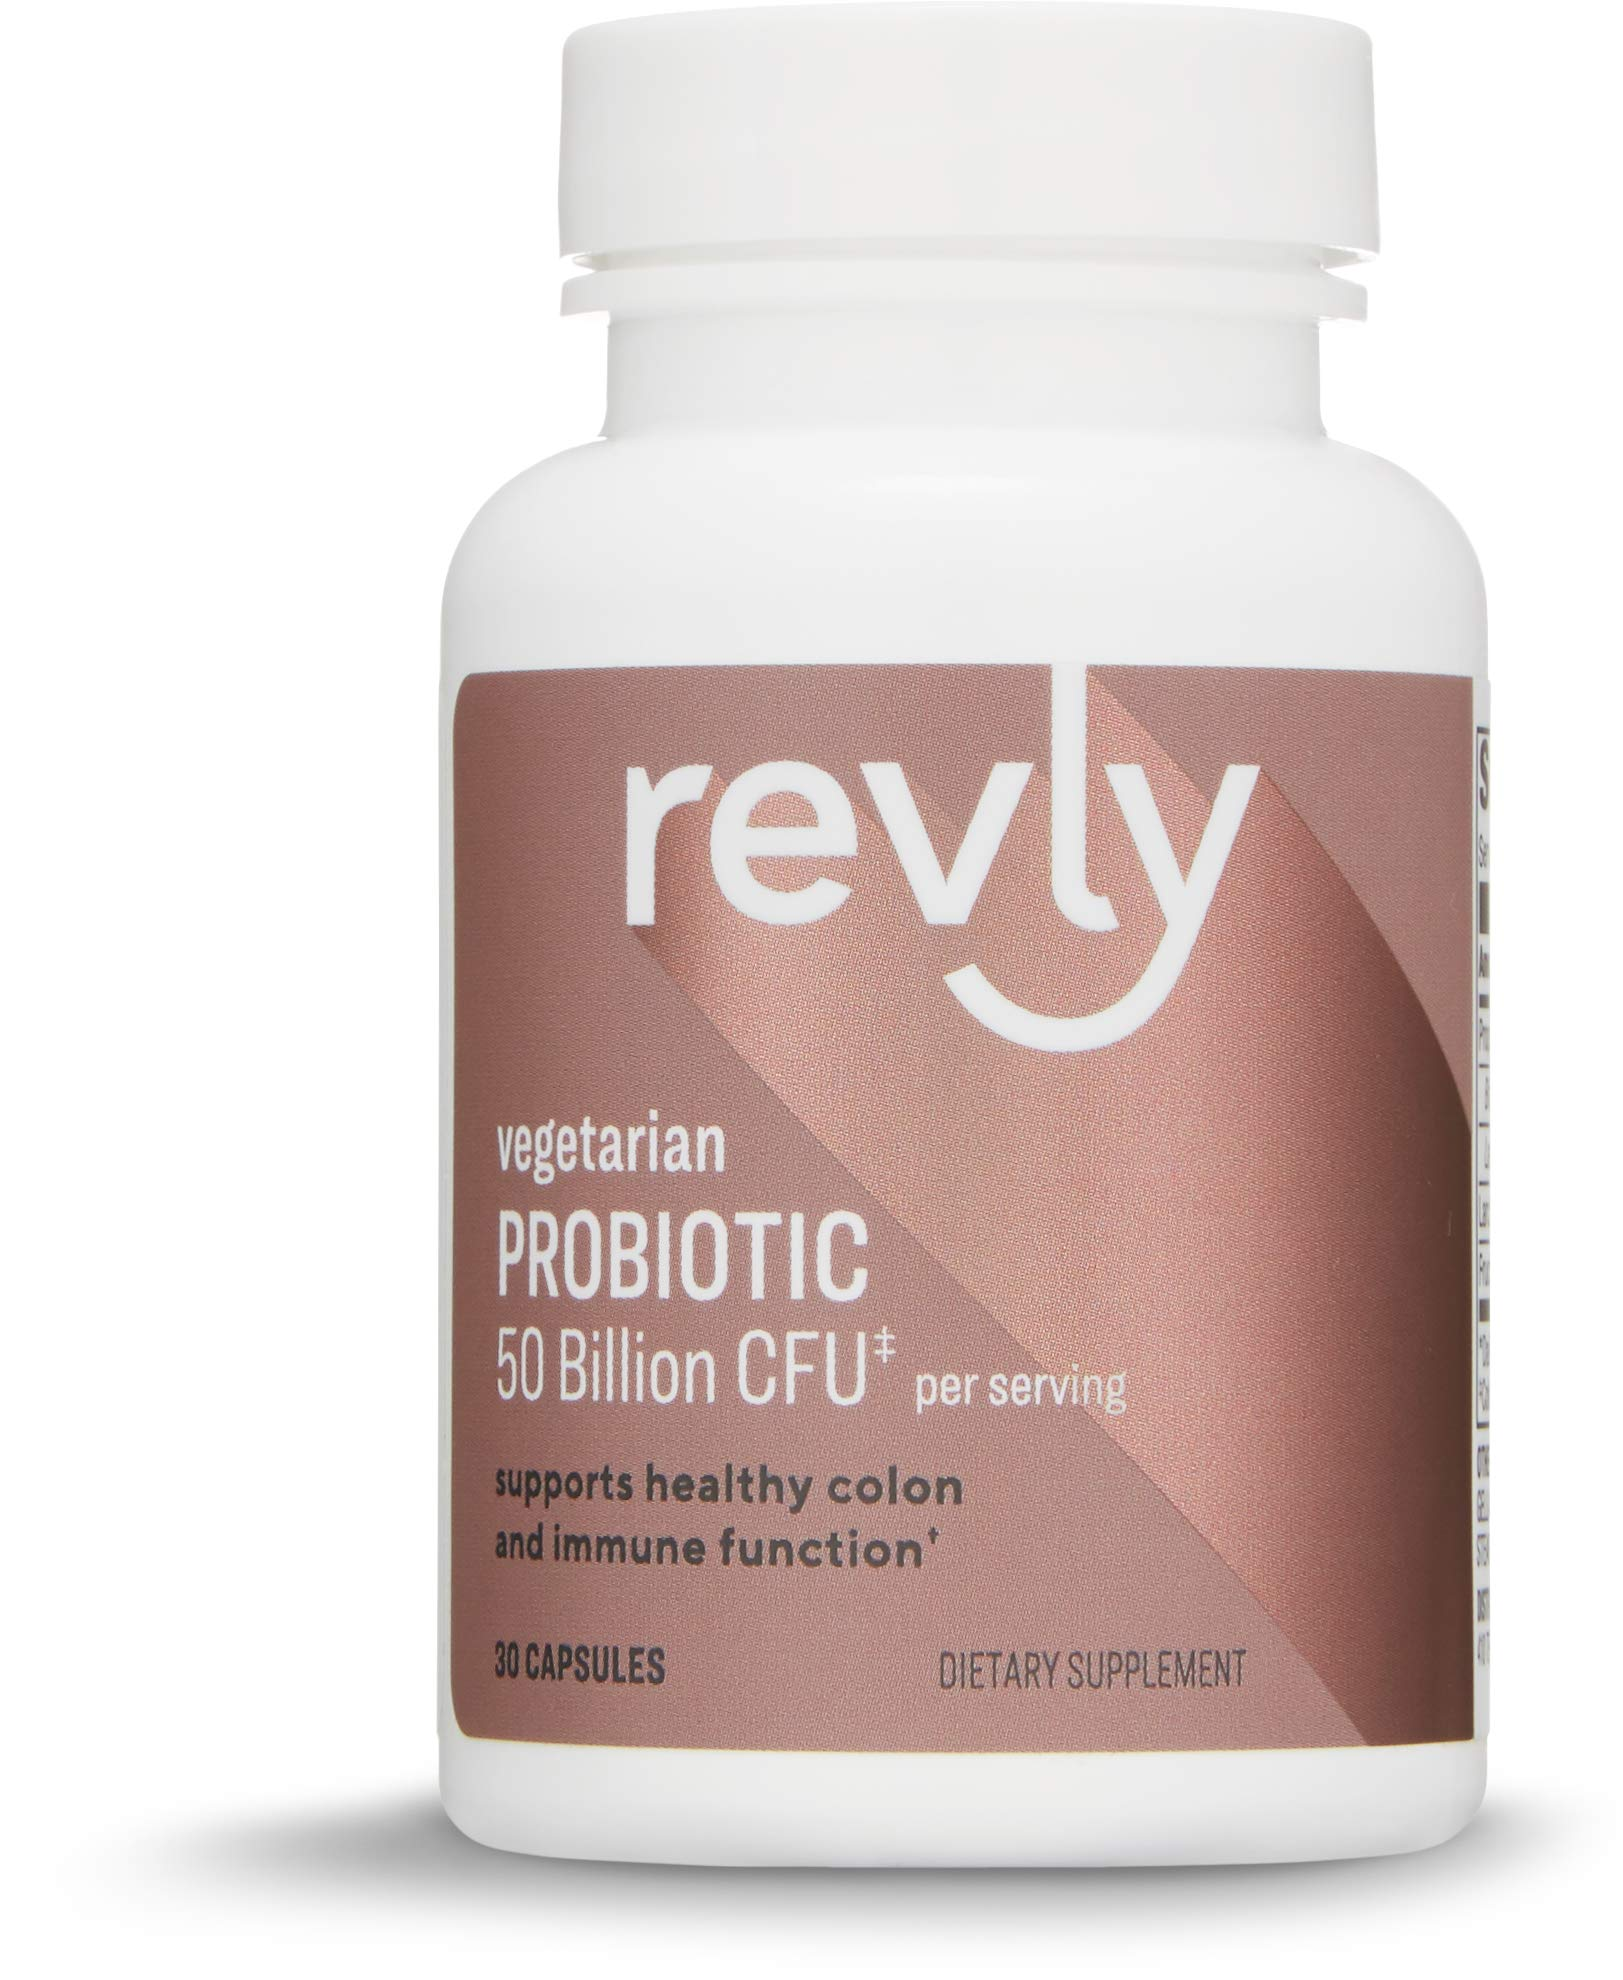 Amazon Brand - Revly Adult Probiotic 50 Billion CFU, 30 Capsules, 1 Month Supply